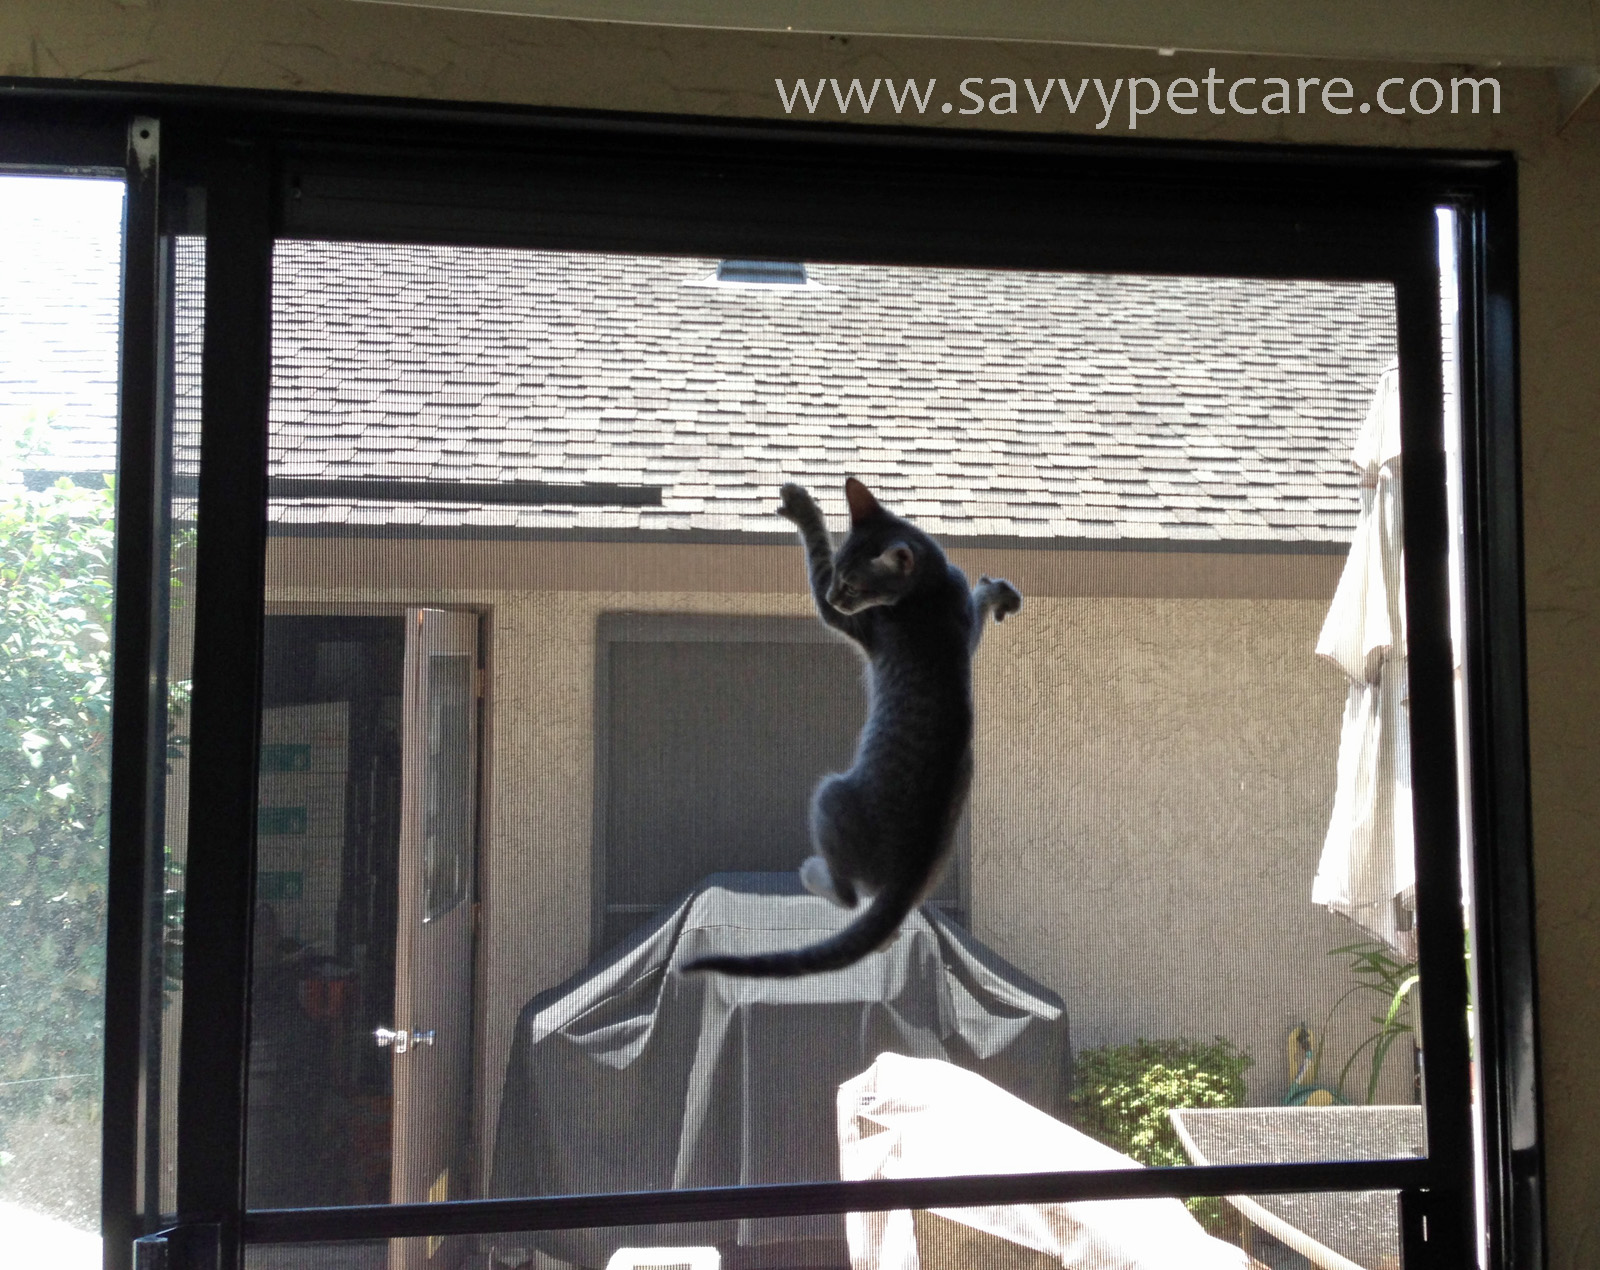 naughty kitten climbing screen